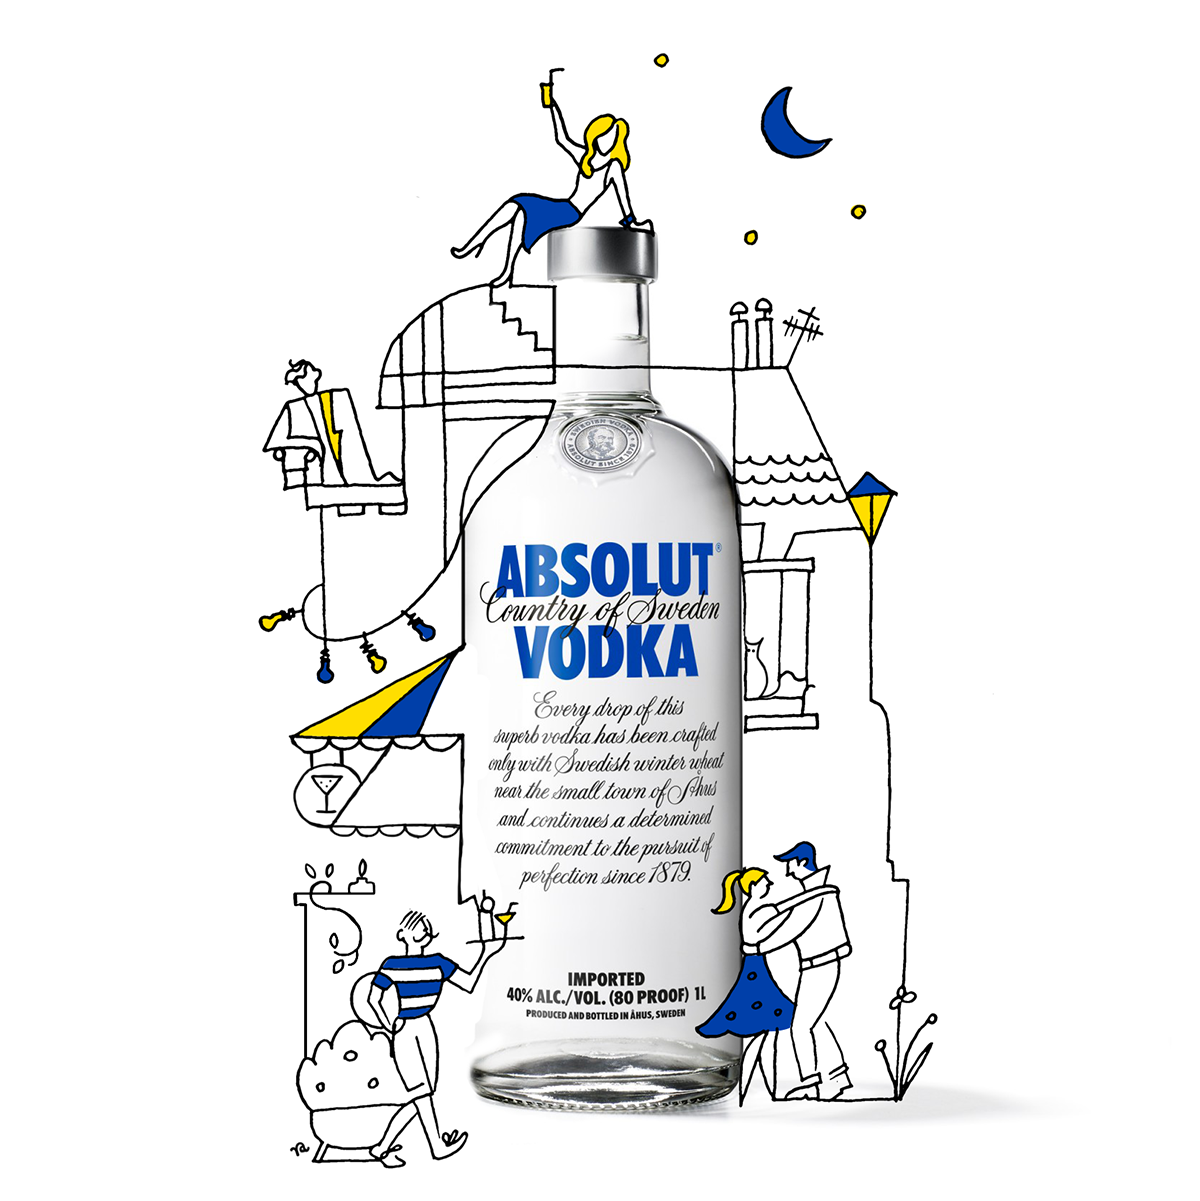 absolut-vodka-illustration-nemesanita.png